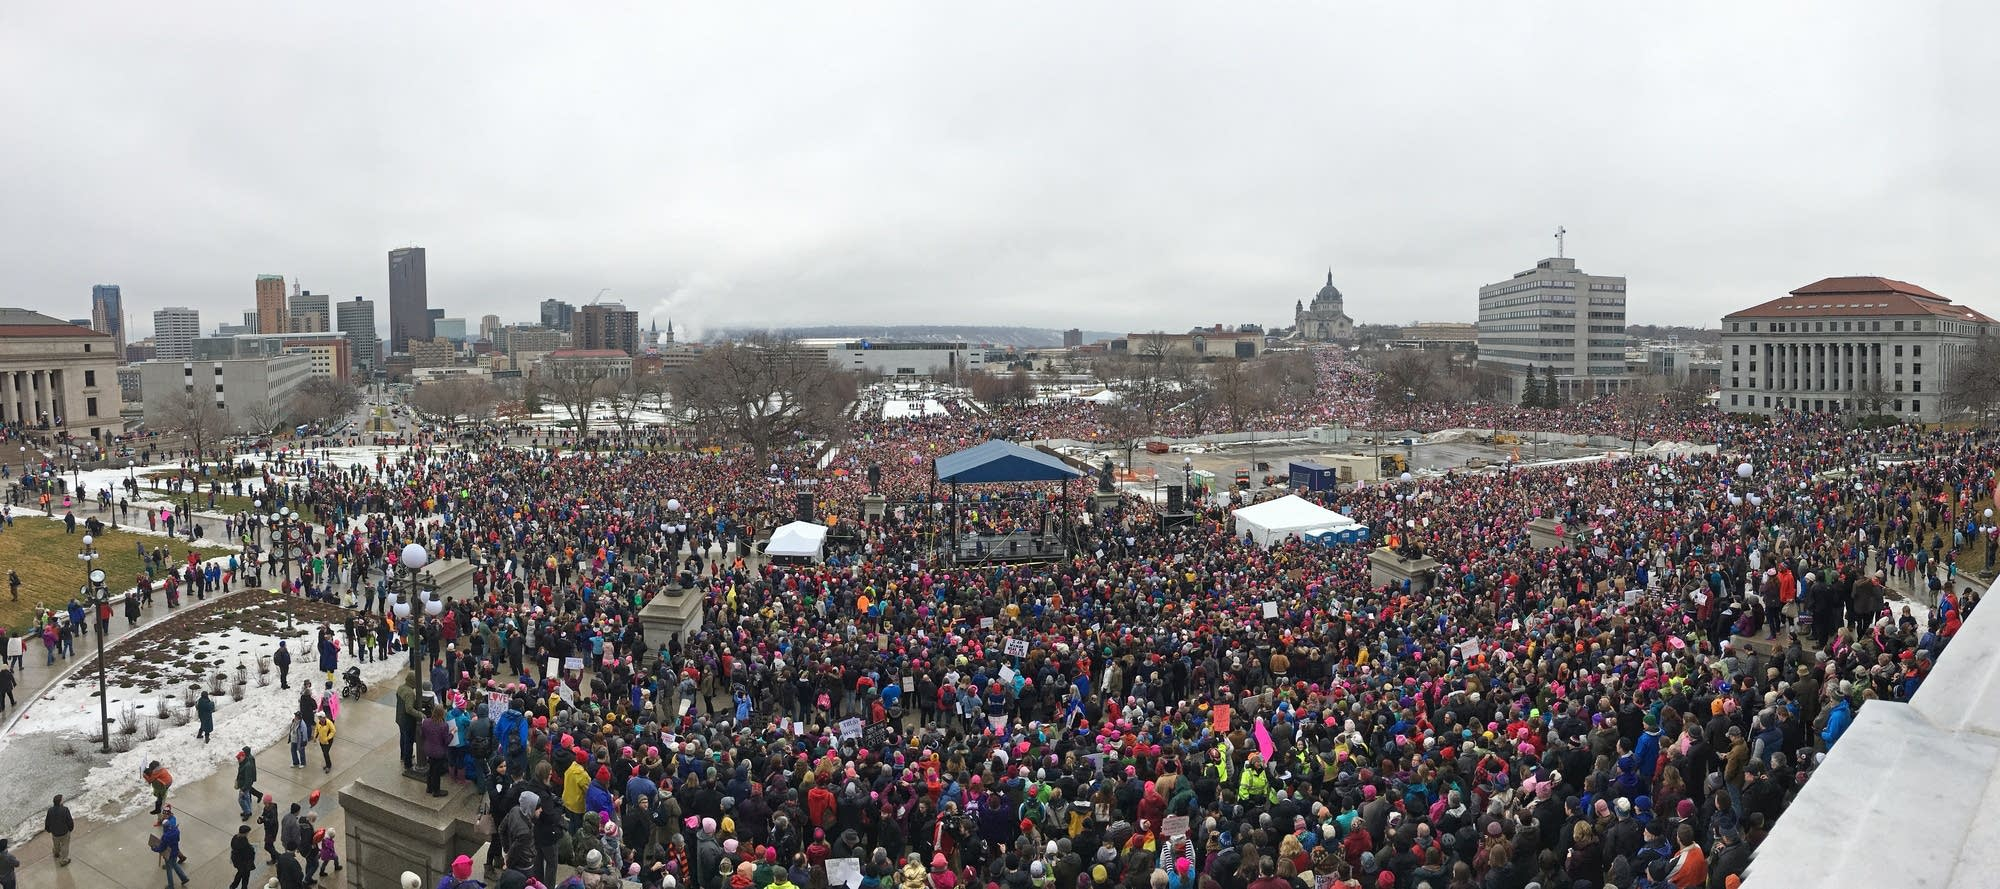 Panoramic view of the Women's March crowd from the capitol.